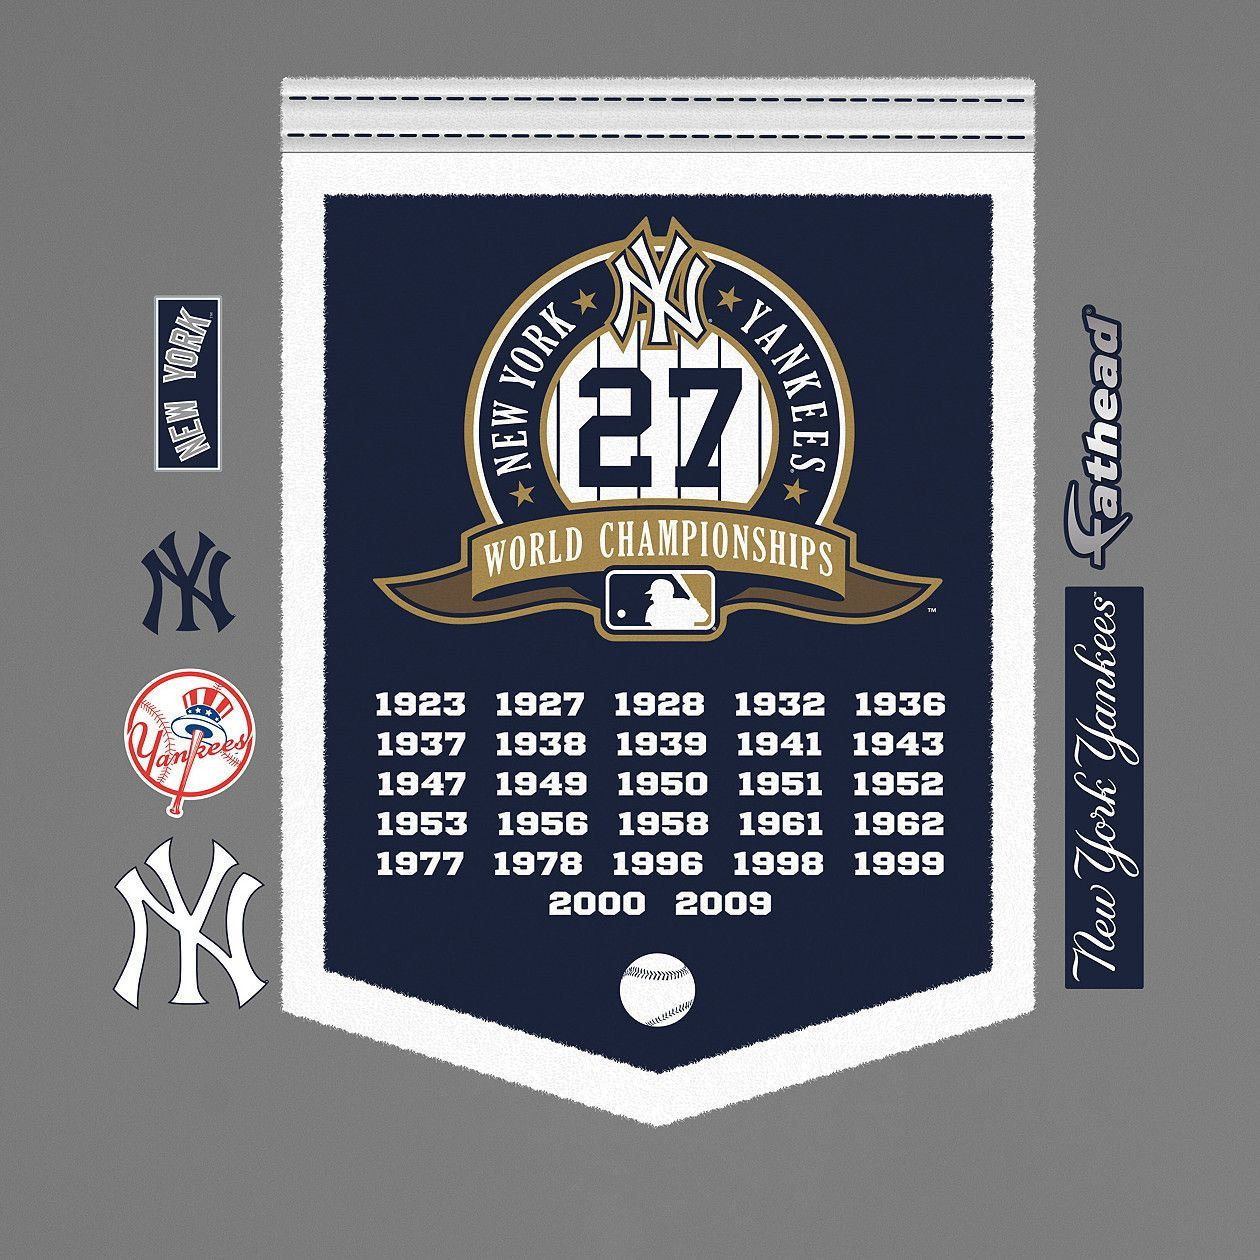 Fathead Mlb New York Yankees World Series Championship Banner Wall Decal Yankees World Series Wall Decals Yankees